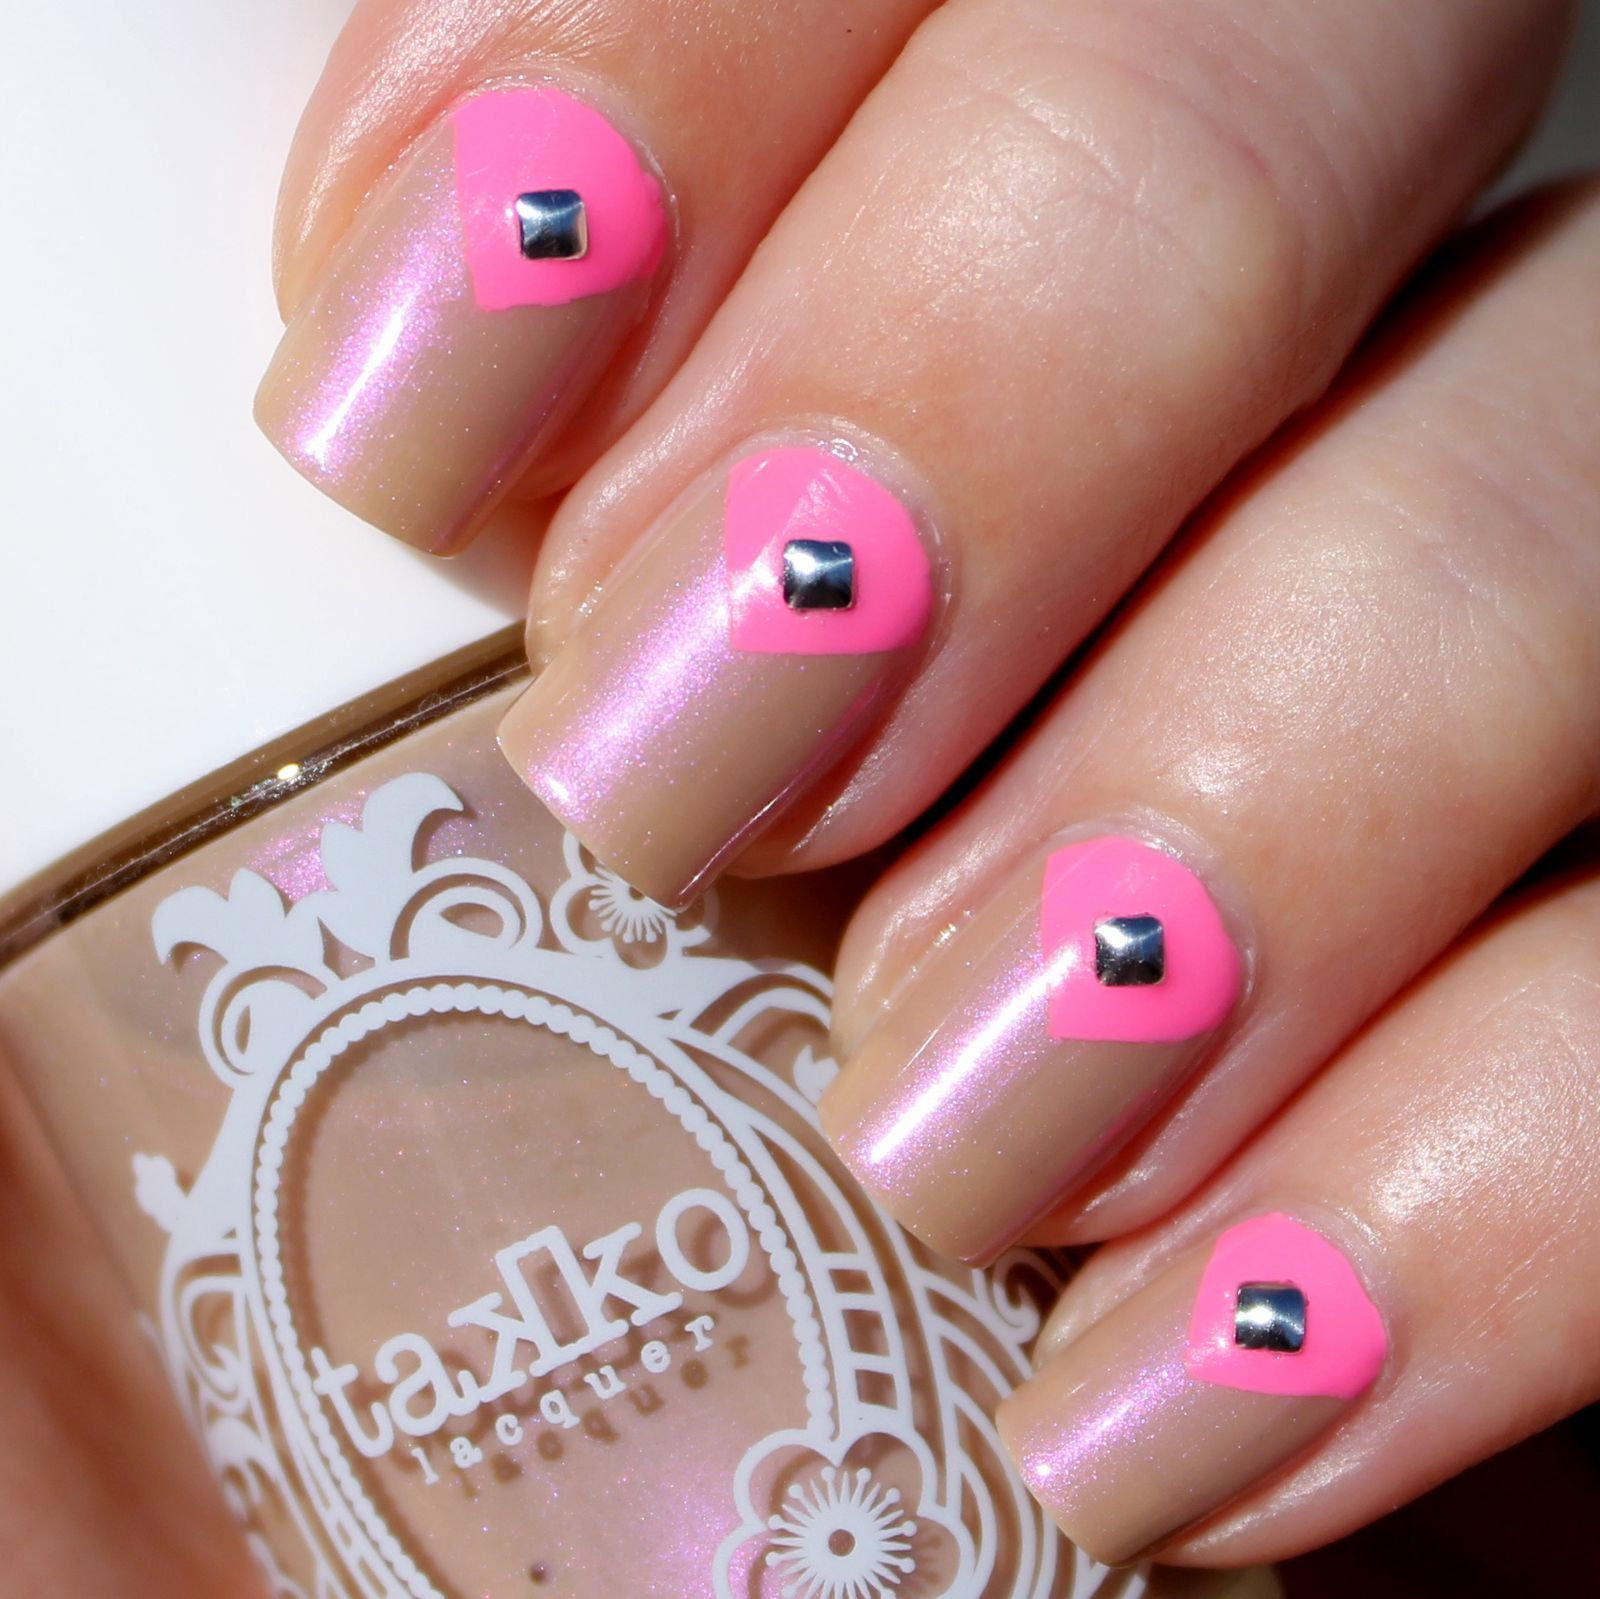 Revlon Quick dry base coat / Takko Lacquer Blushing Nude / PIXI Fluoro Flamingo & tape / Born Pretty Store Studs / Poshe Top Coat